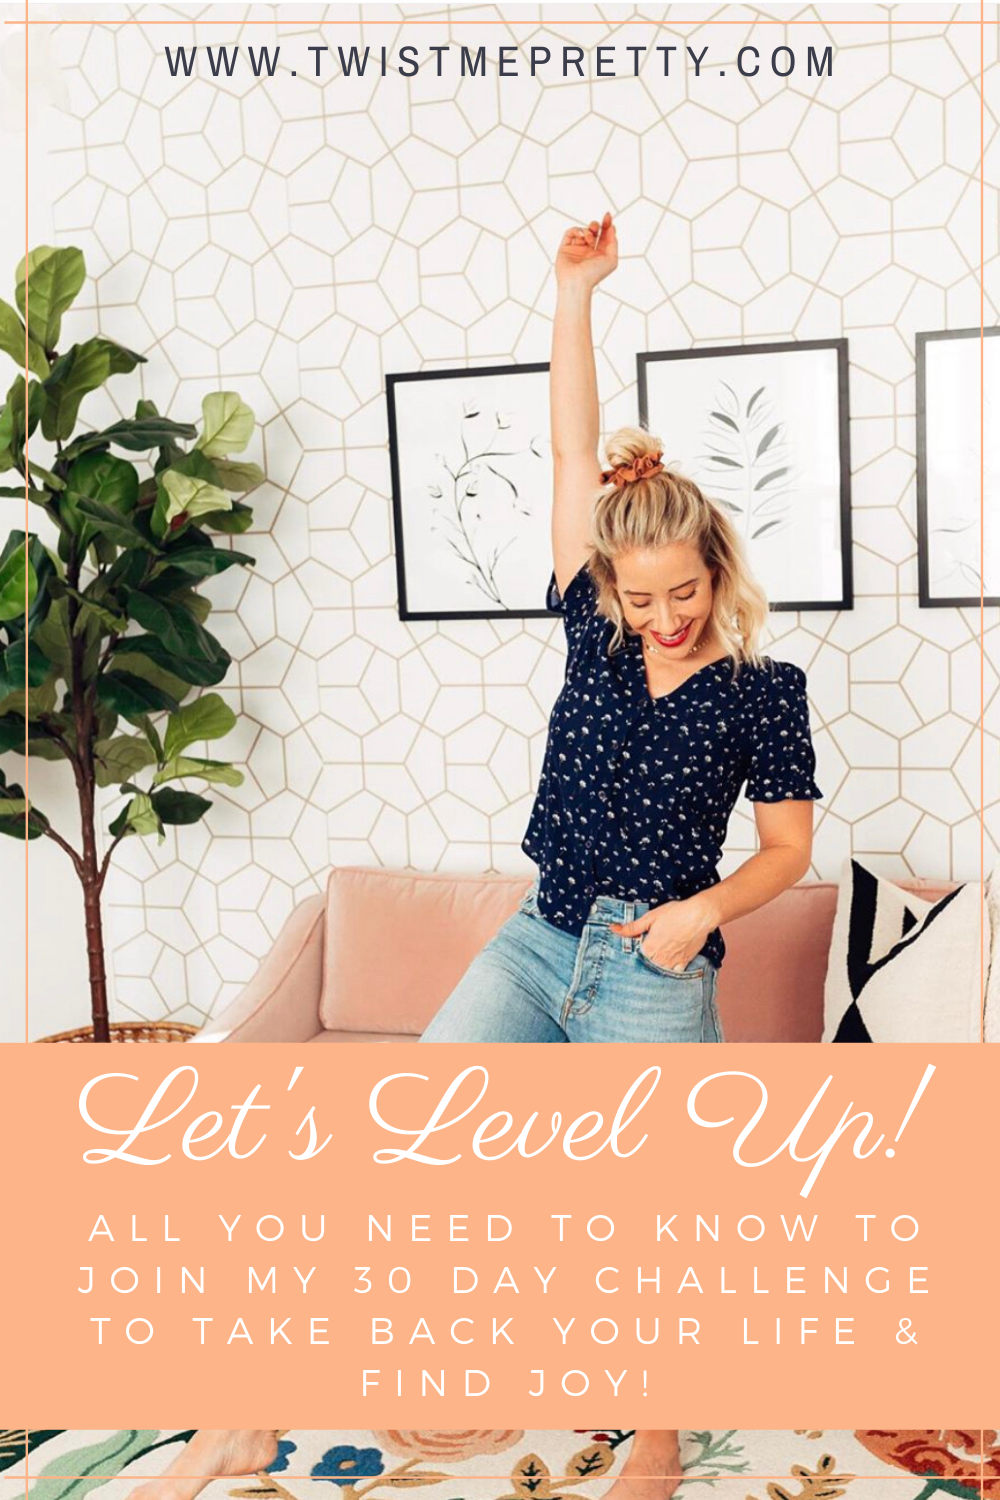 Let's Level Up! All you need to know to join my 30 day challenge to take back the power and joy in your life. www.twistmepretty.com